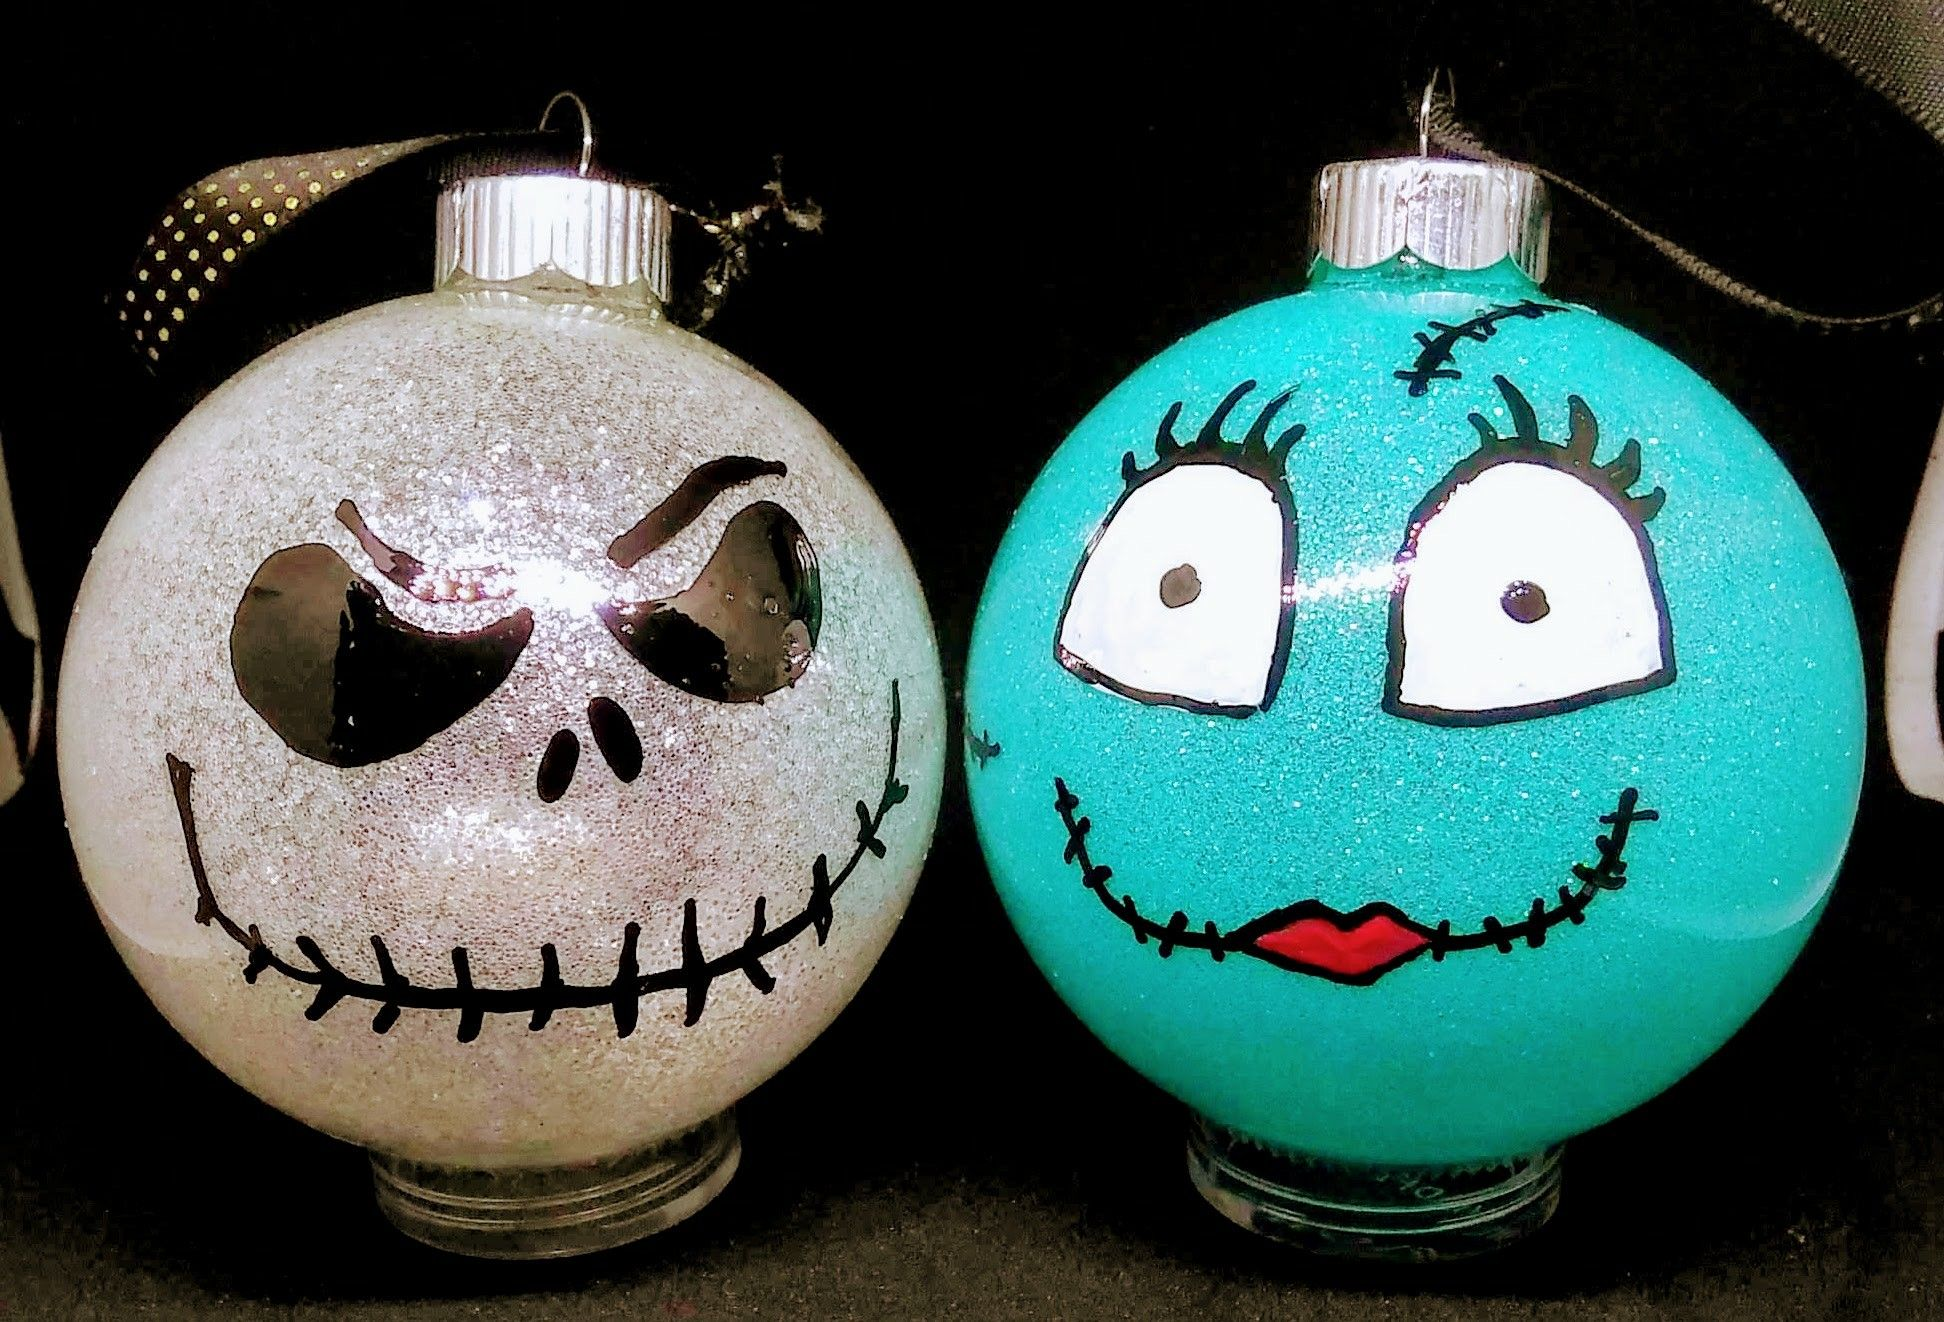 Diy Nightmare Before Christmas Ornaments Nightmare Before Christmas Ornaments Christmas Bulbs Christmas Ornaments